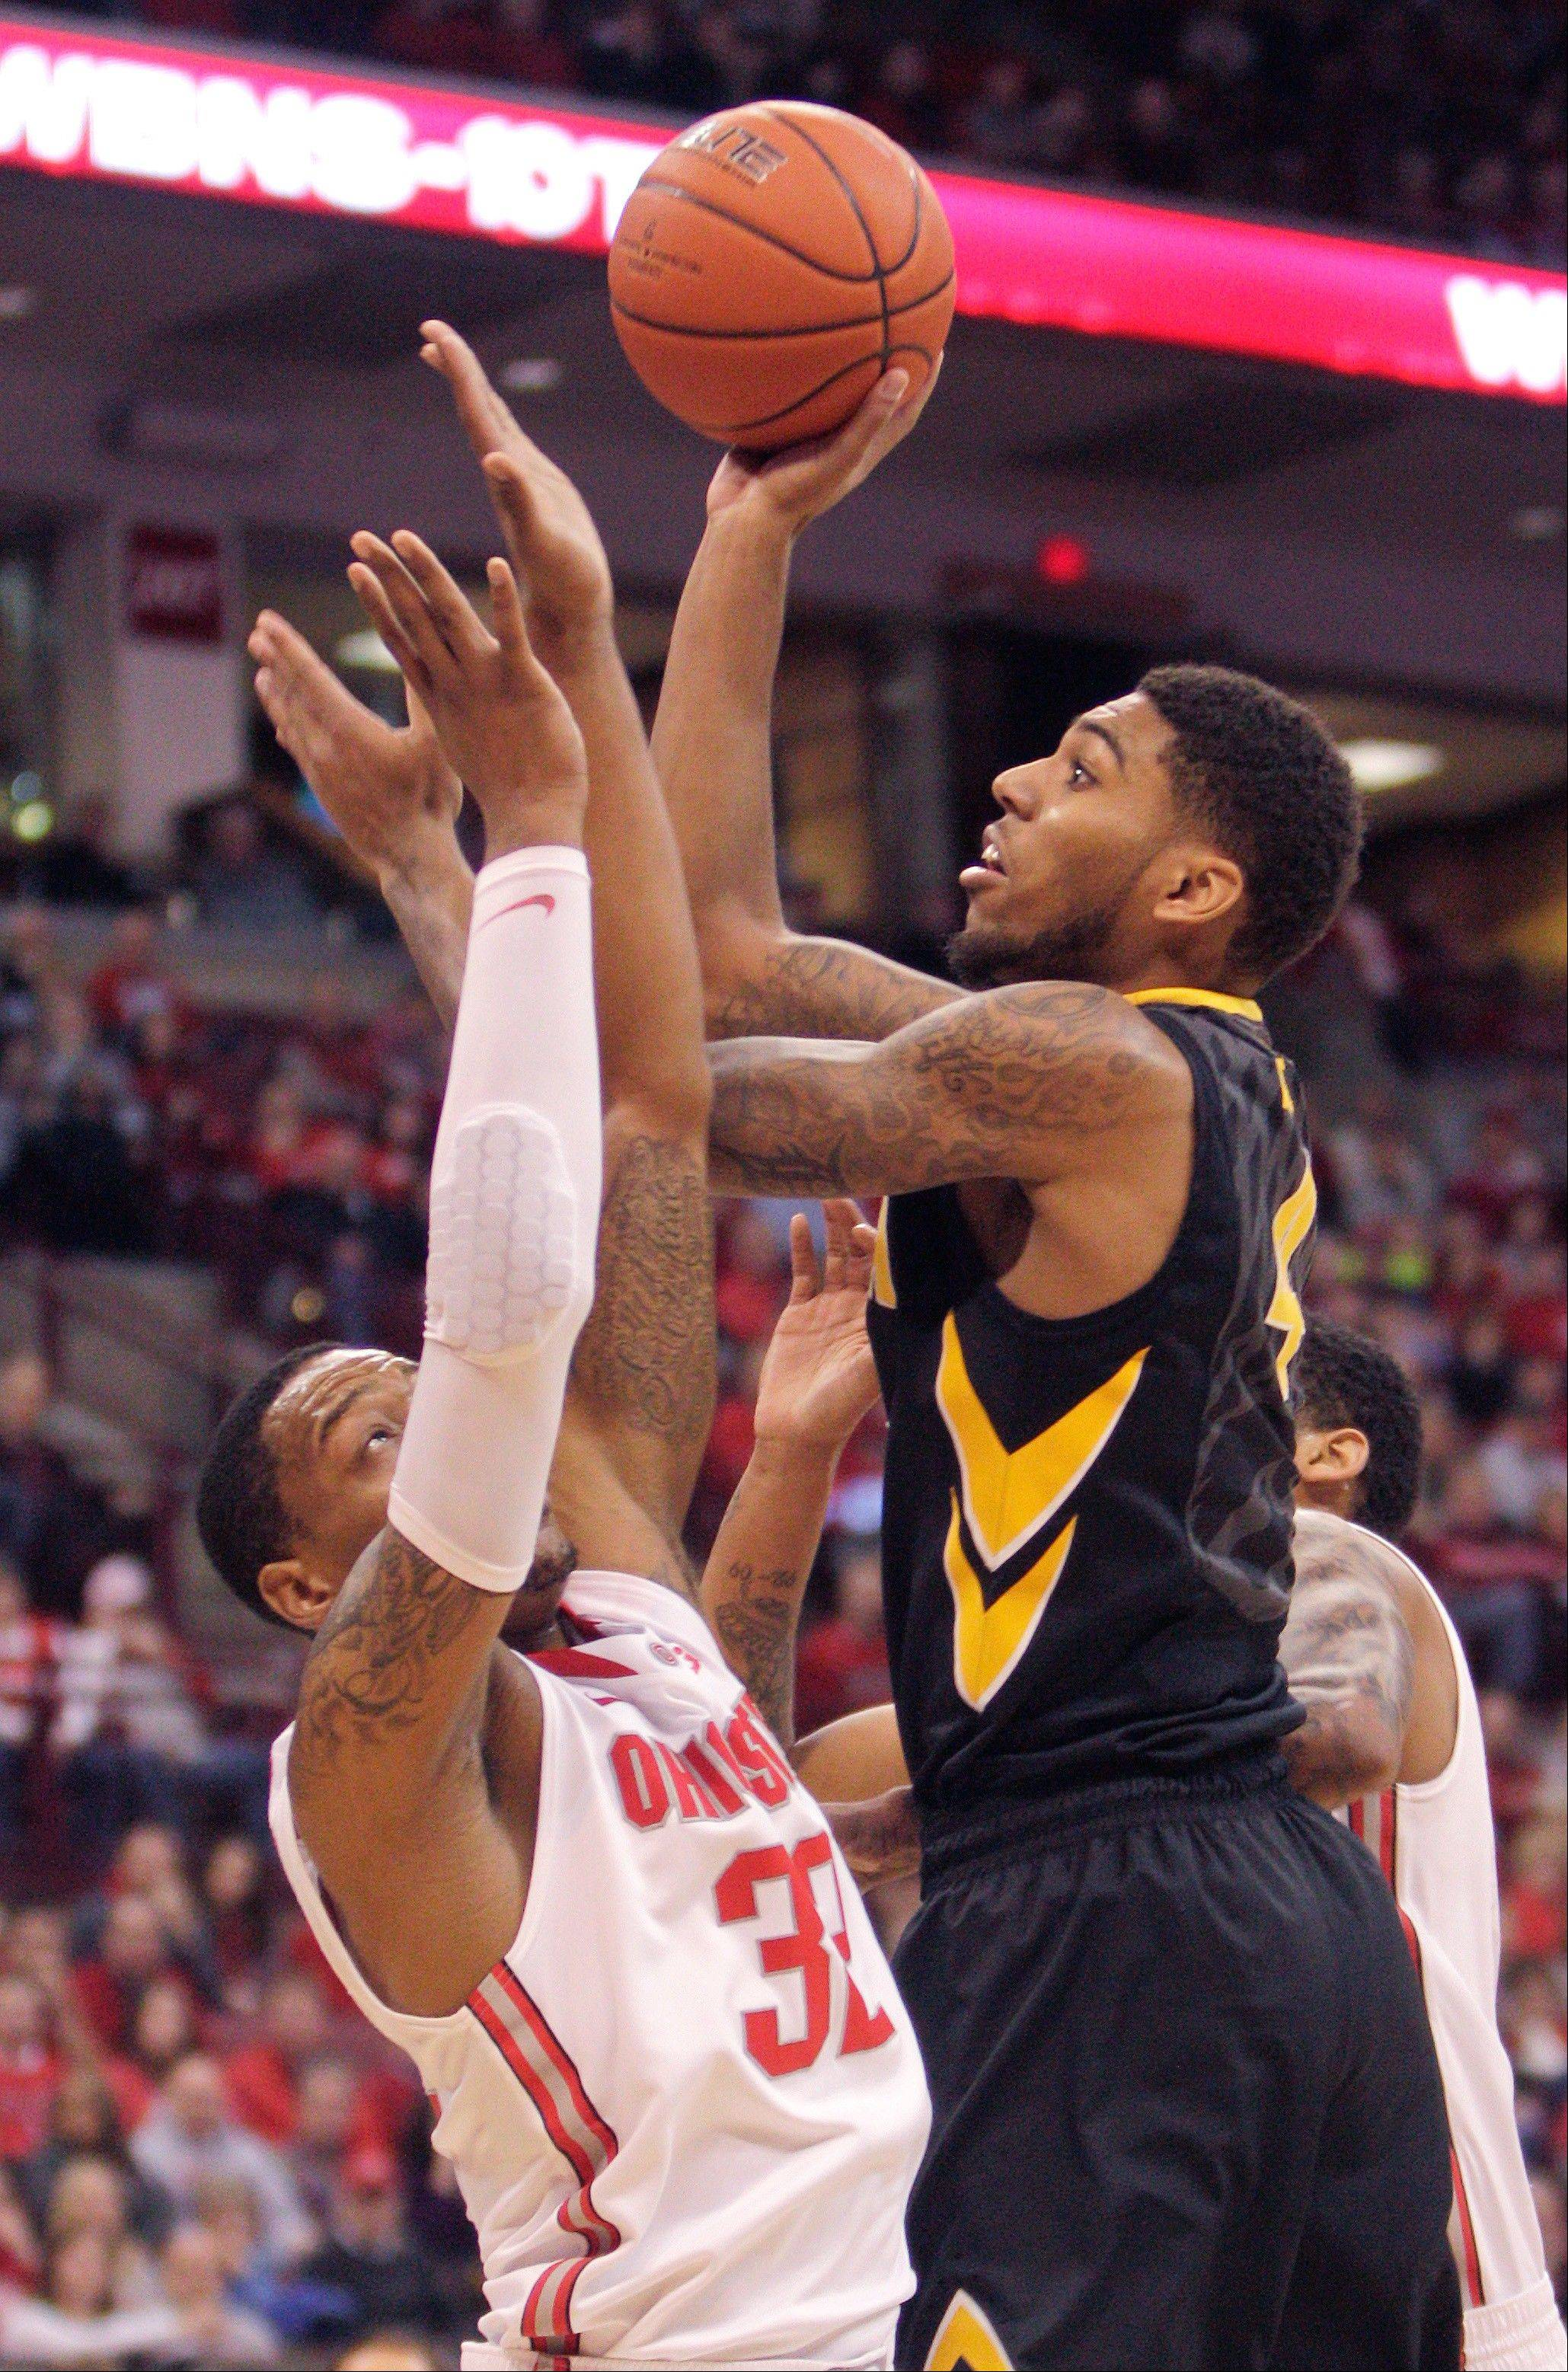 Iowa hands Ohio State another loss